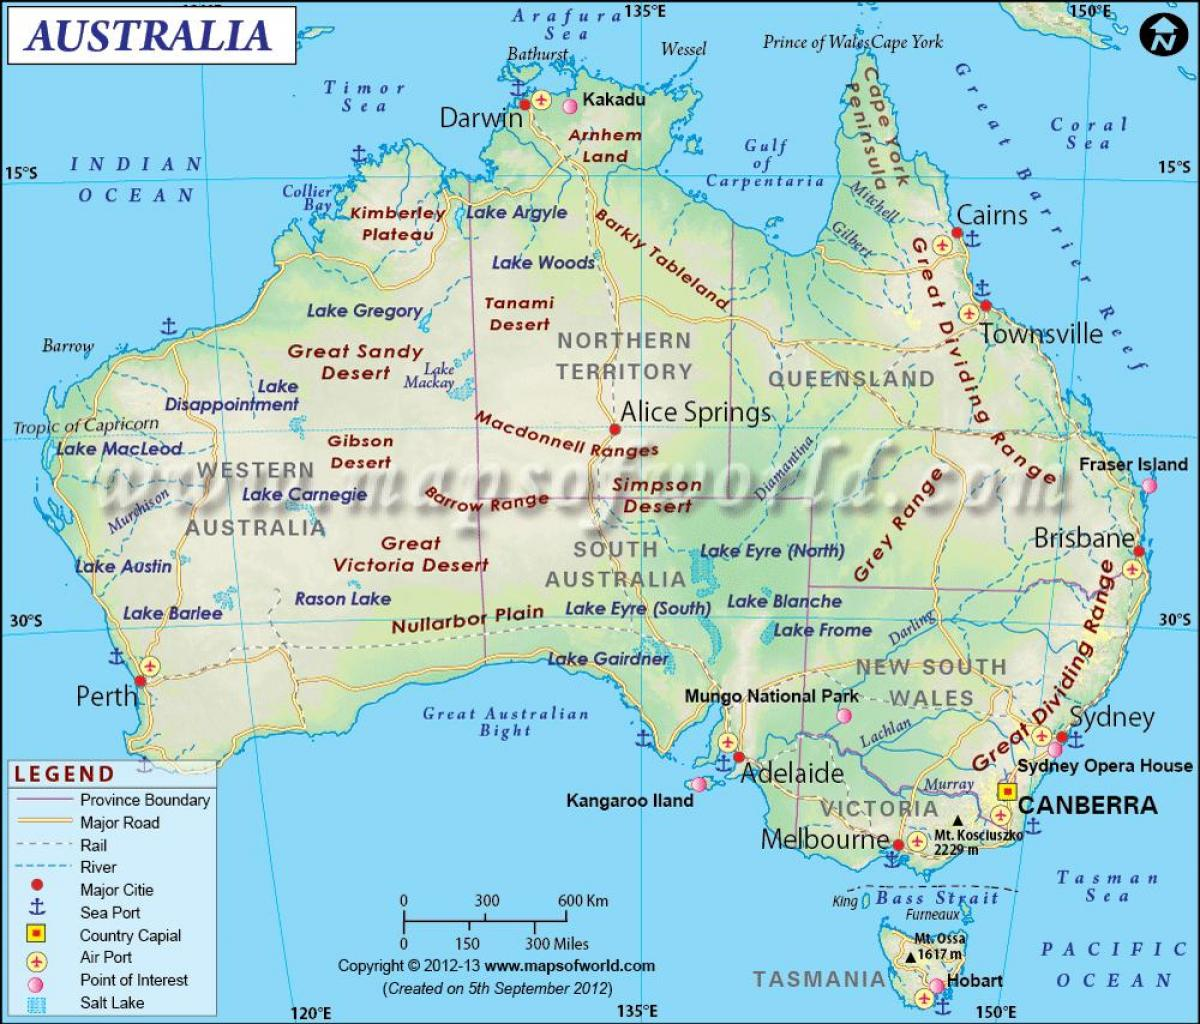 Map Of Australia And New Zealand With Capitals.Australia Capital Map Map Of Australia With Capitals Australia